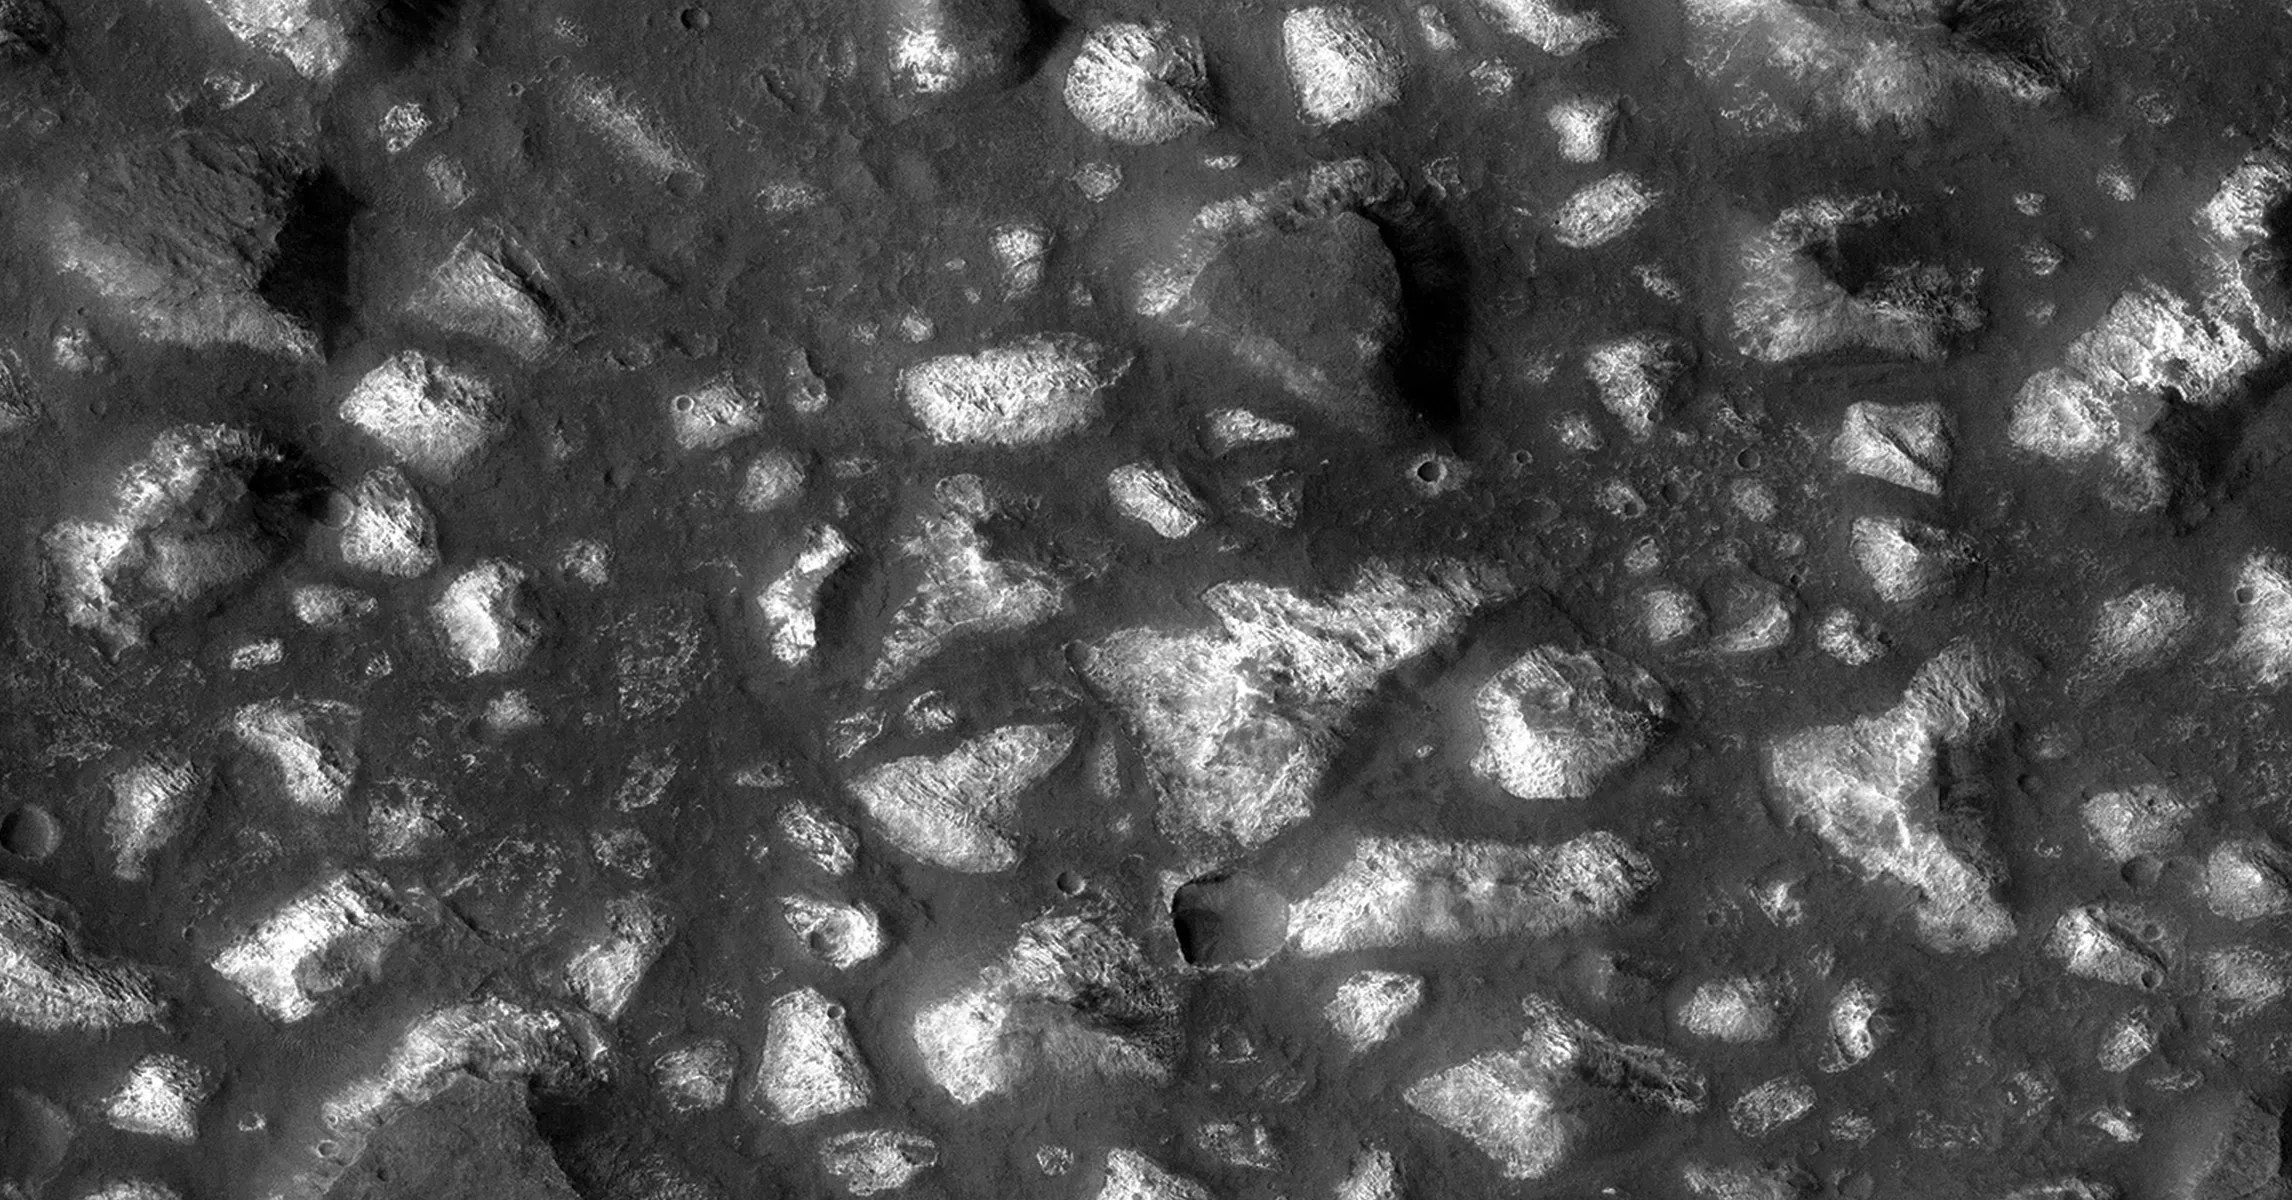 Space Photos On Mars Clues About The Origin Of Life